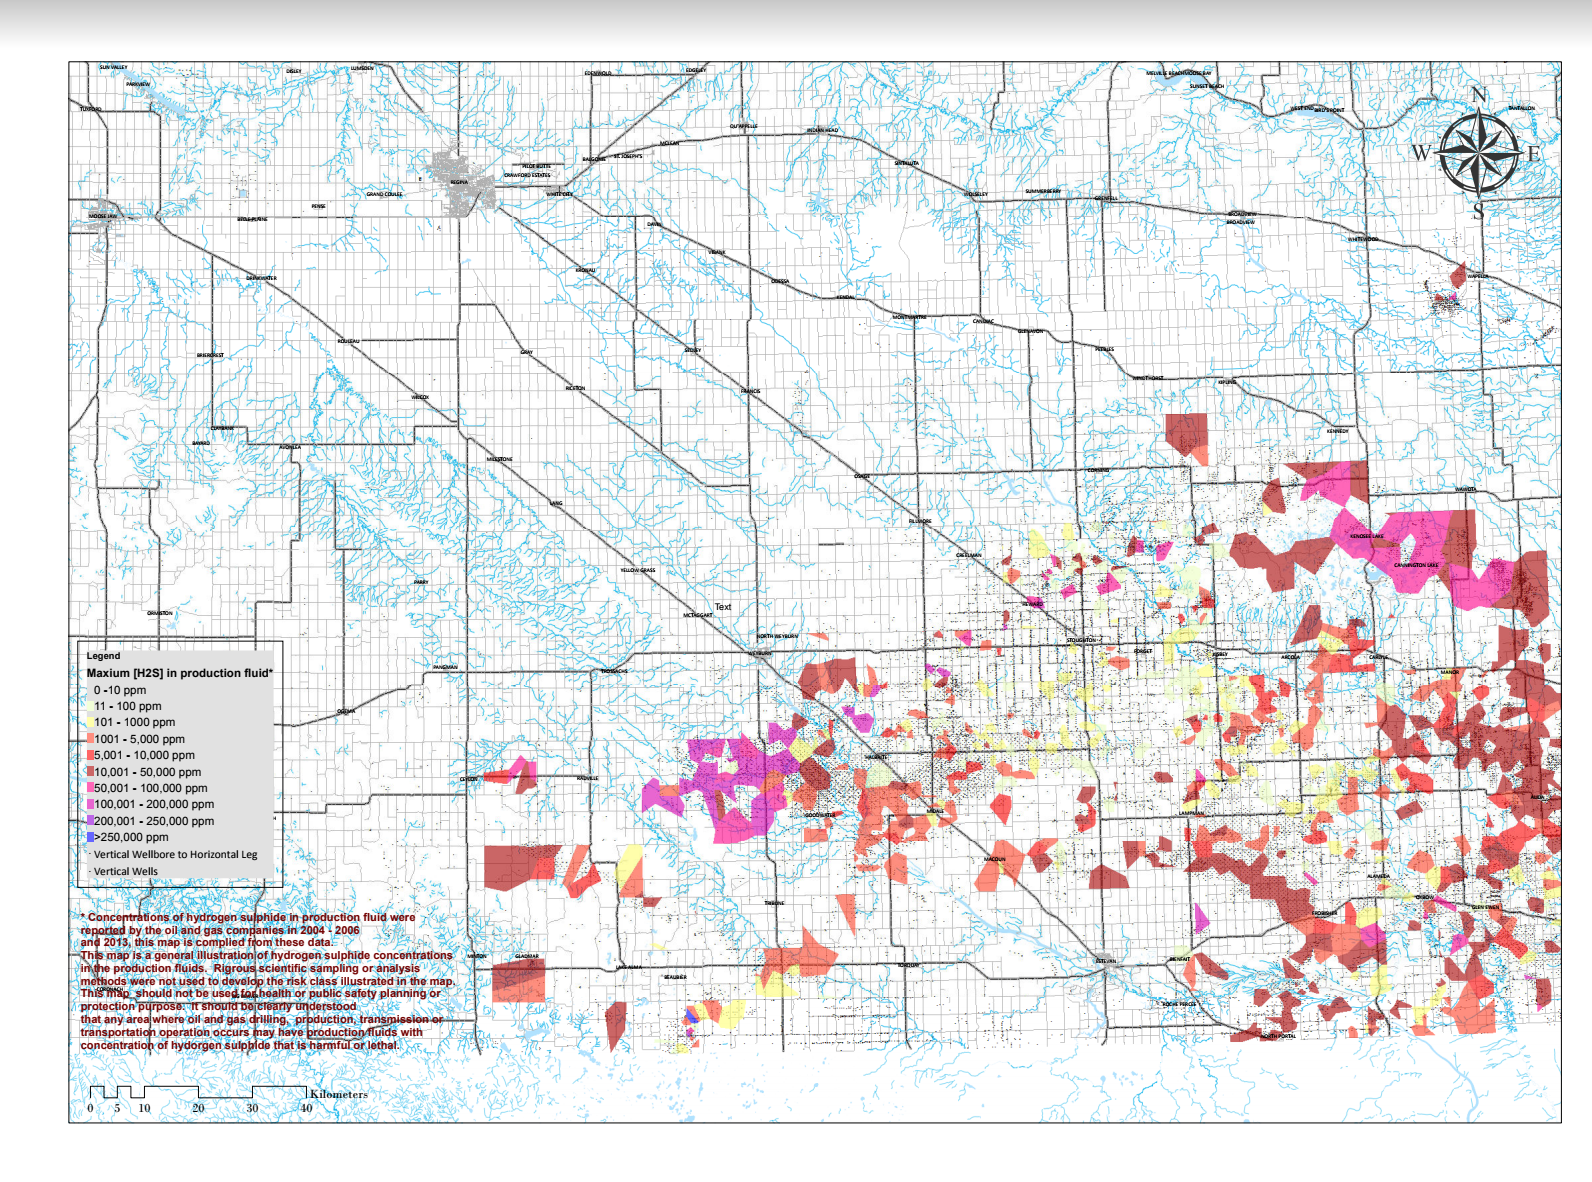 Saskatchewan, critical sour gas locations, Ministry of the Economy, The Price of Oil